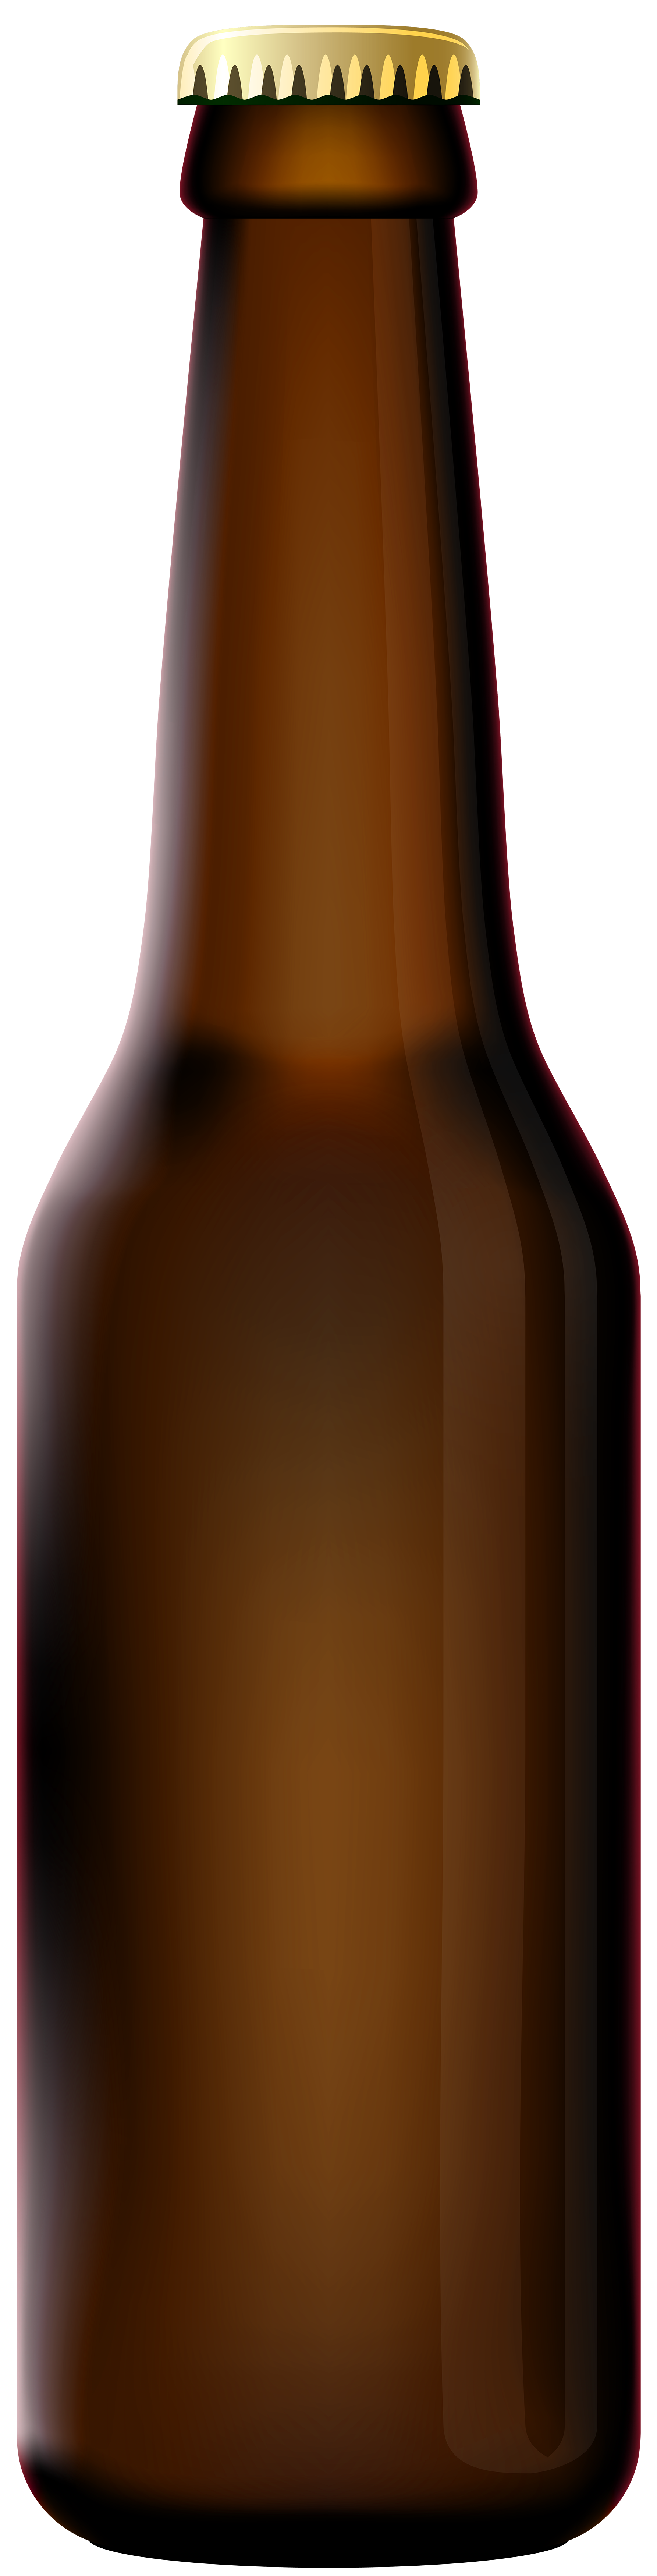 Free Beer Bottle Cliparts, Download Free Clip Art, Free Clip Art on.